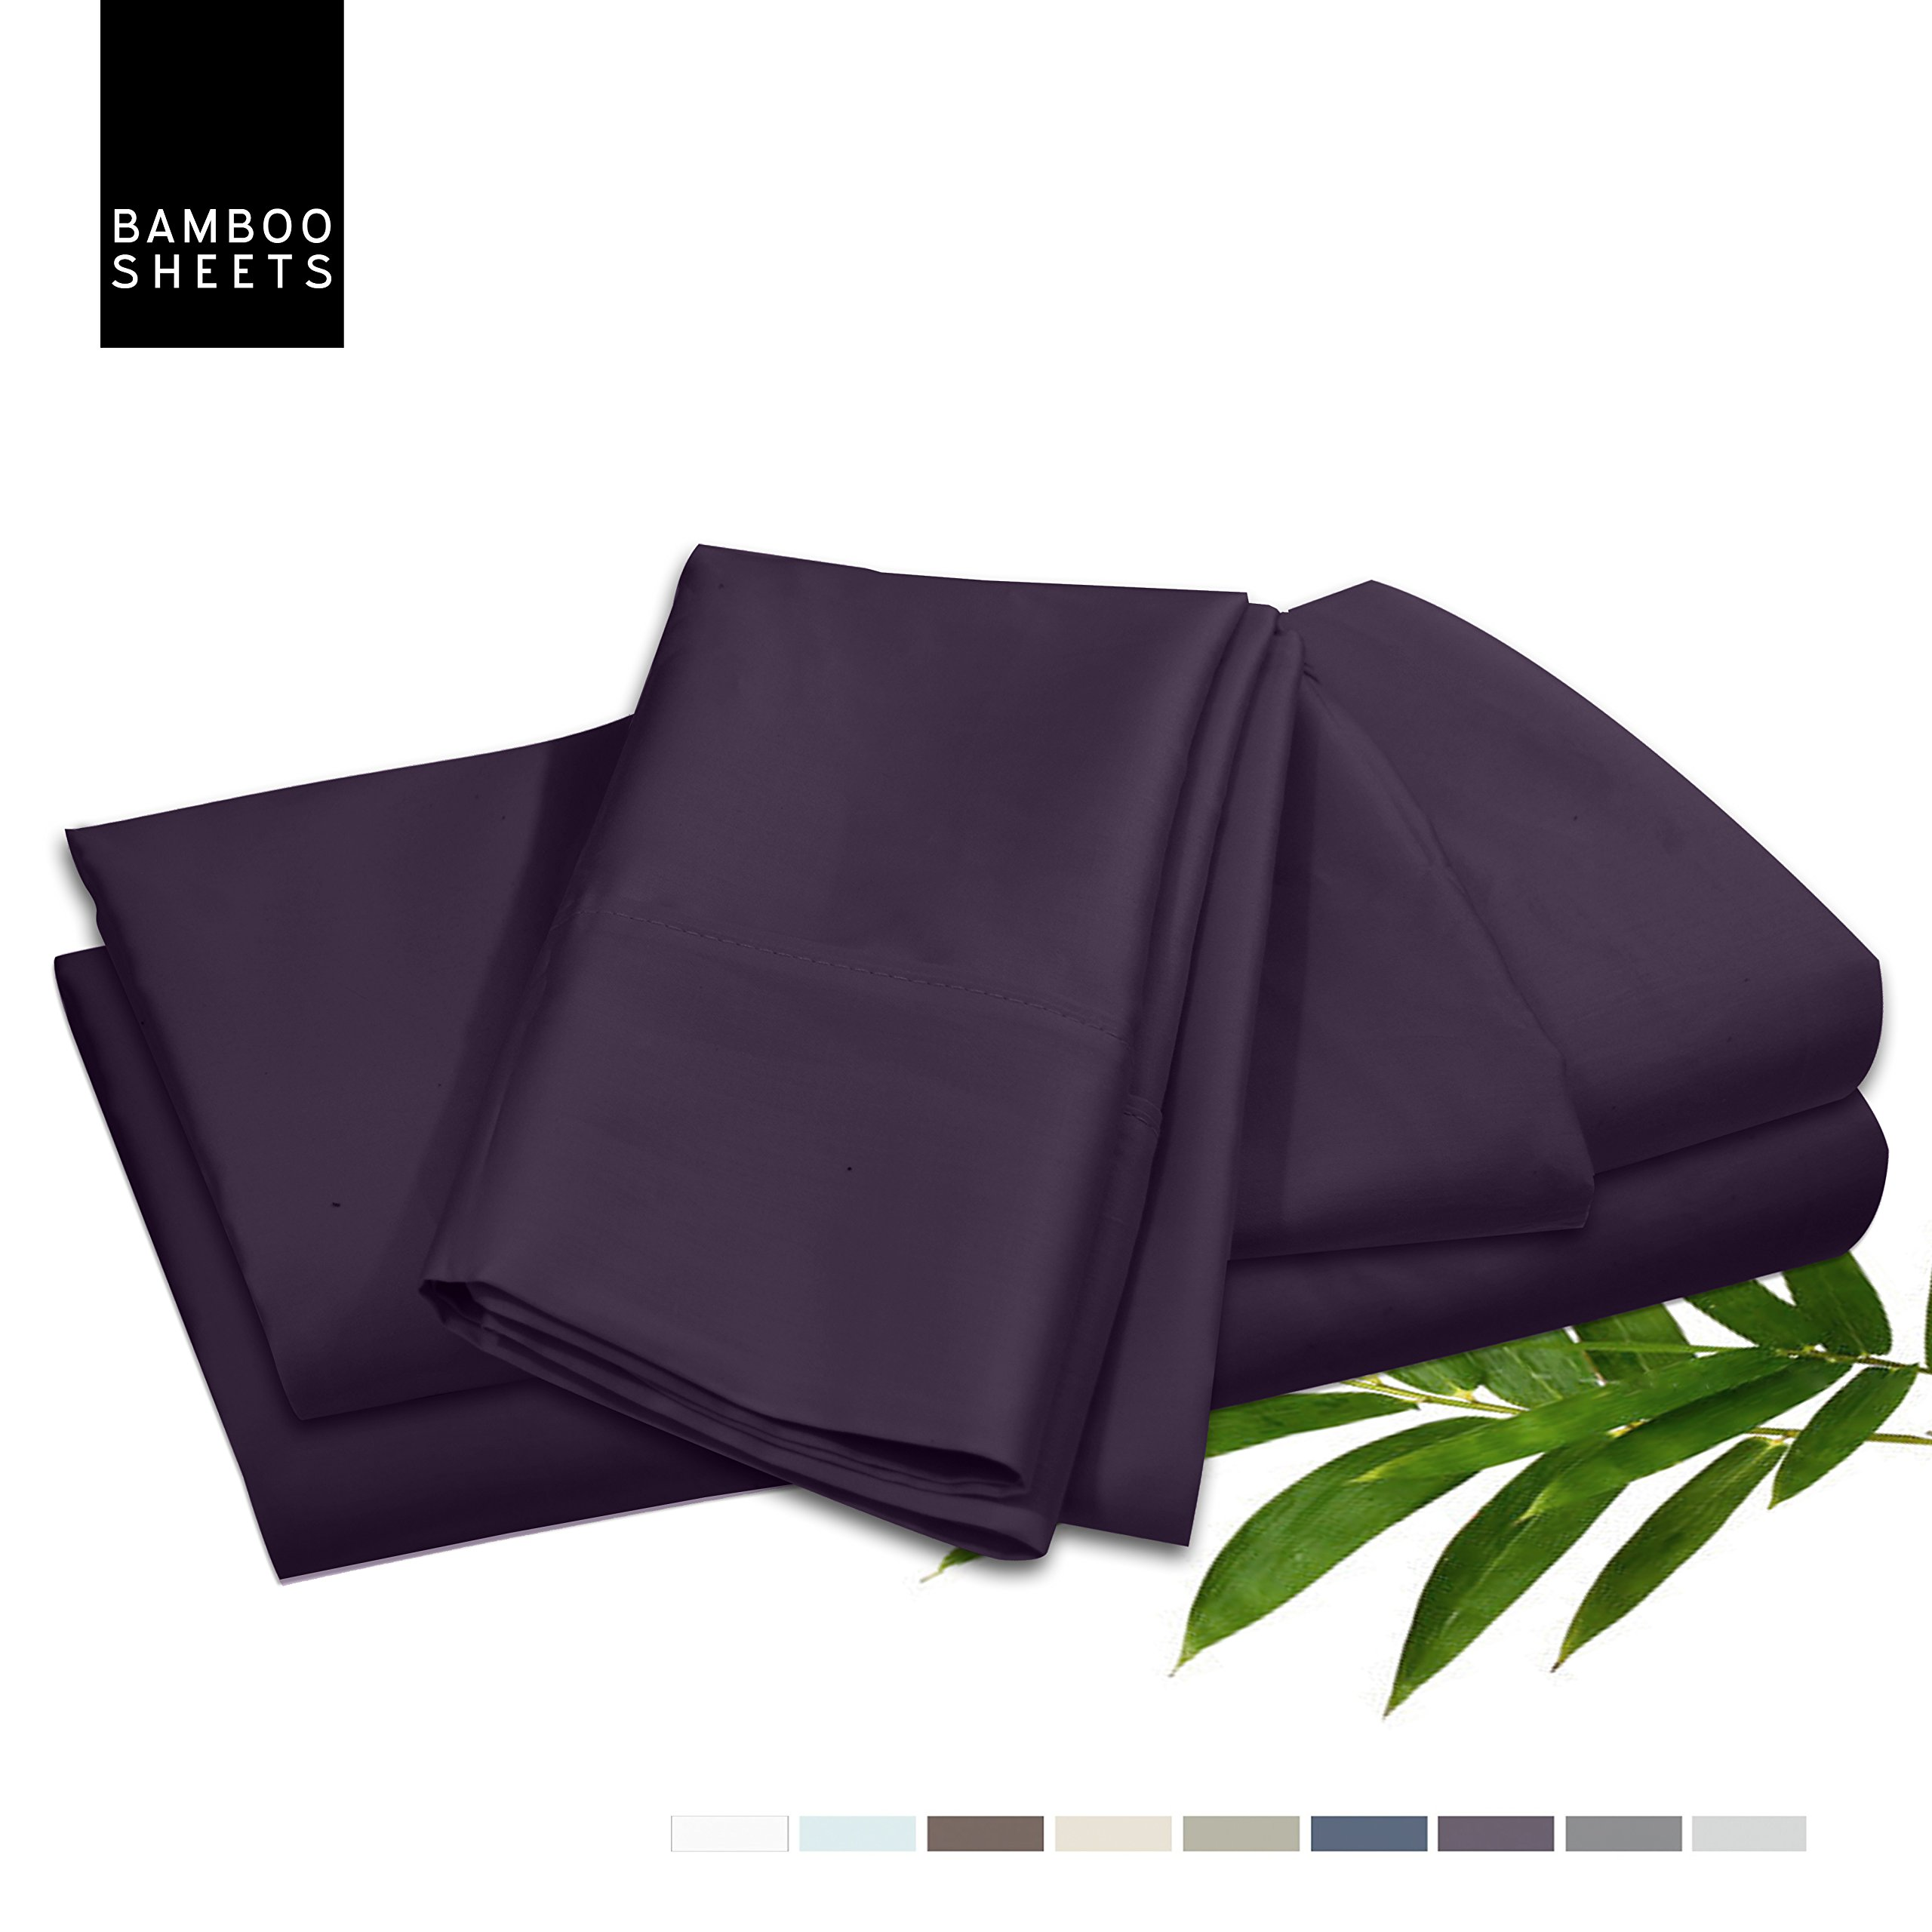 queen sheets bed set sheet product bamboo